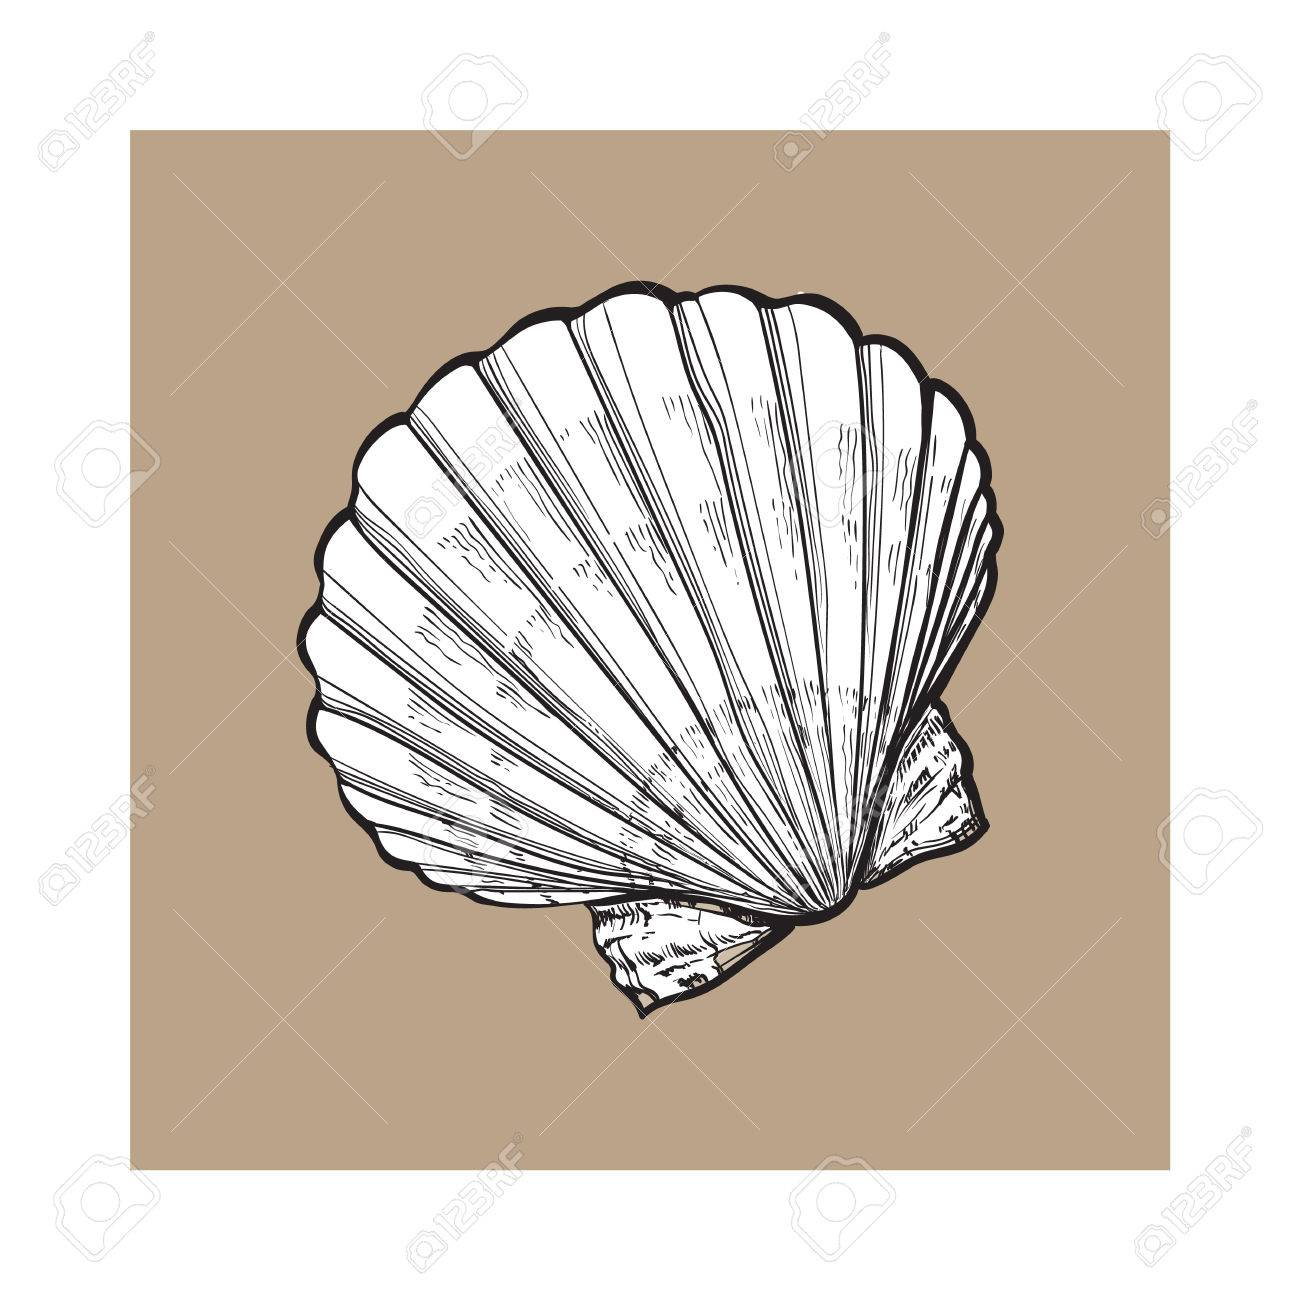 1300x1300 White Scallop Sea Shell, Sketch Style Vector Illustration Isolated